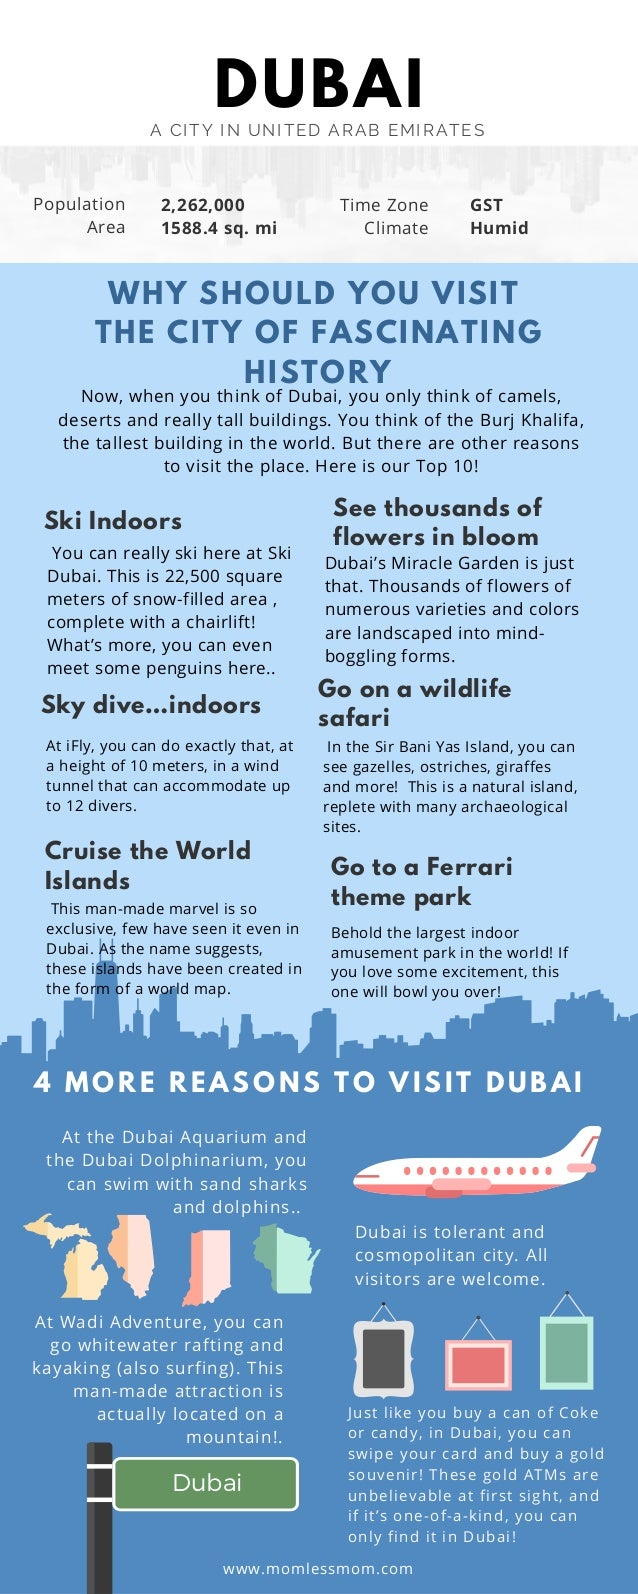 DUBAIA CITY IN UNITED ARAB EMIRATES Dubai Sky dive…indoors Cruise the World Islands See thousands of flowers in bloom Go o...